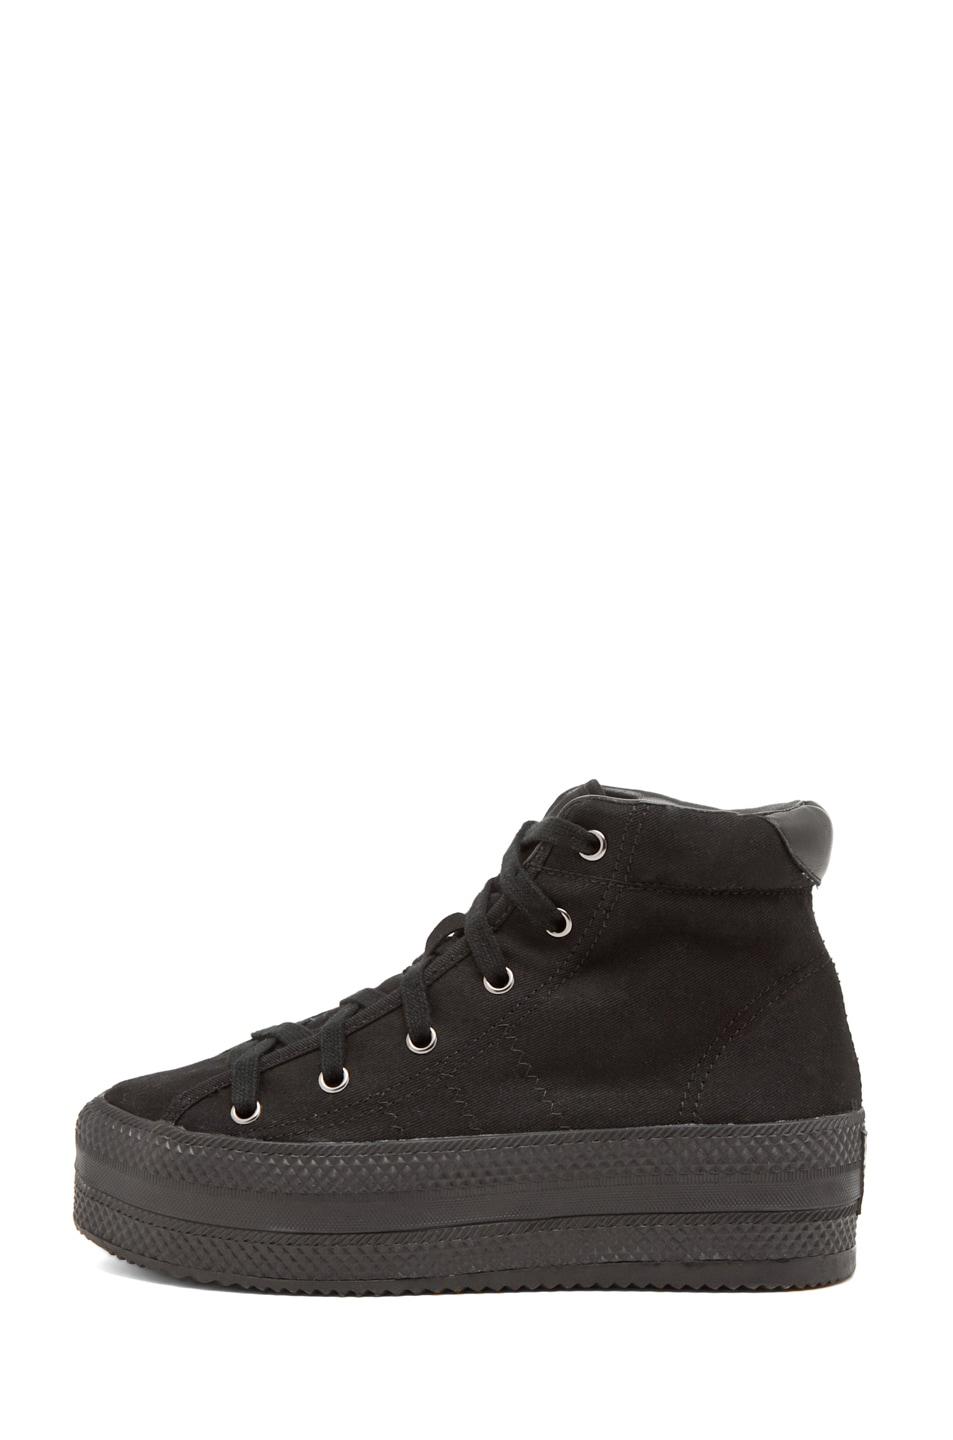 Image 1 of Chloe Sevigny for Opening Ceremony Canvas Platforms in Black